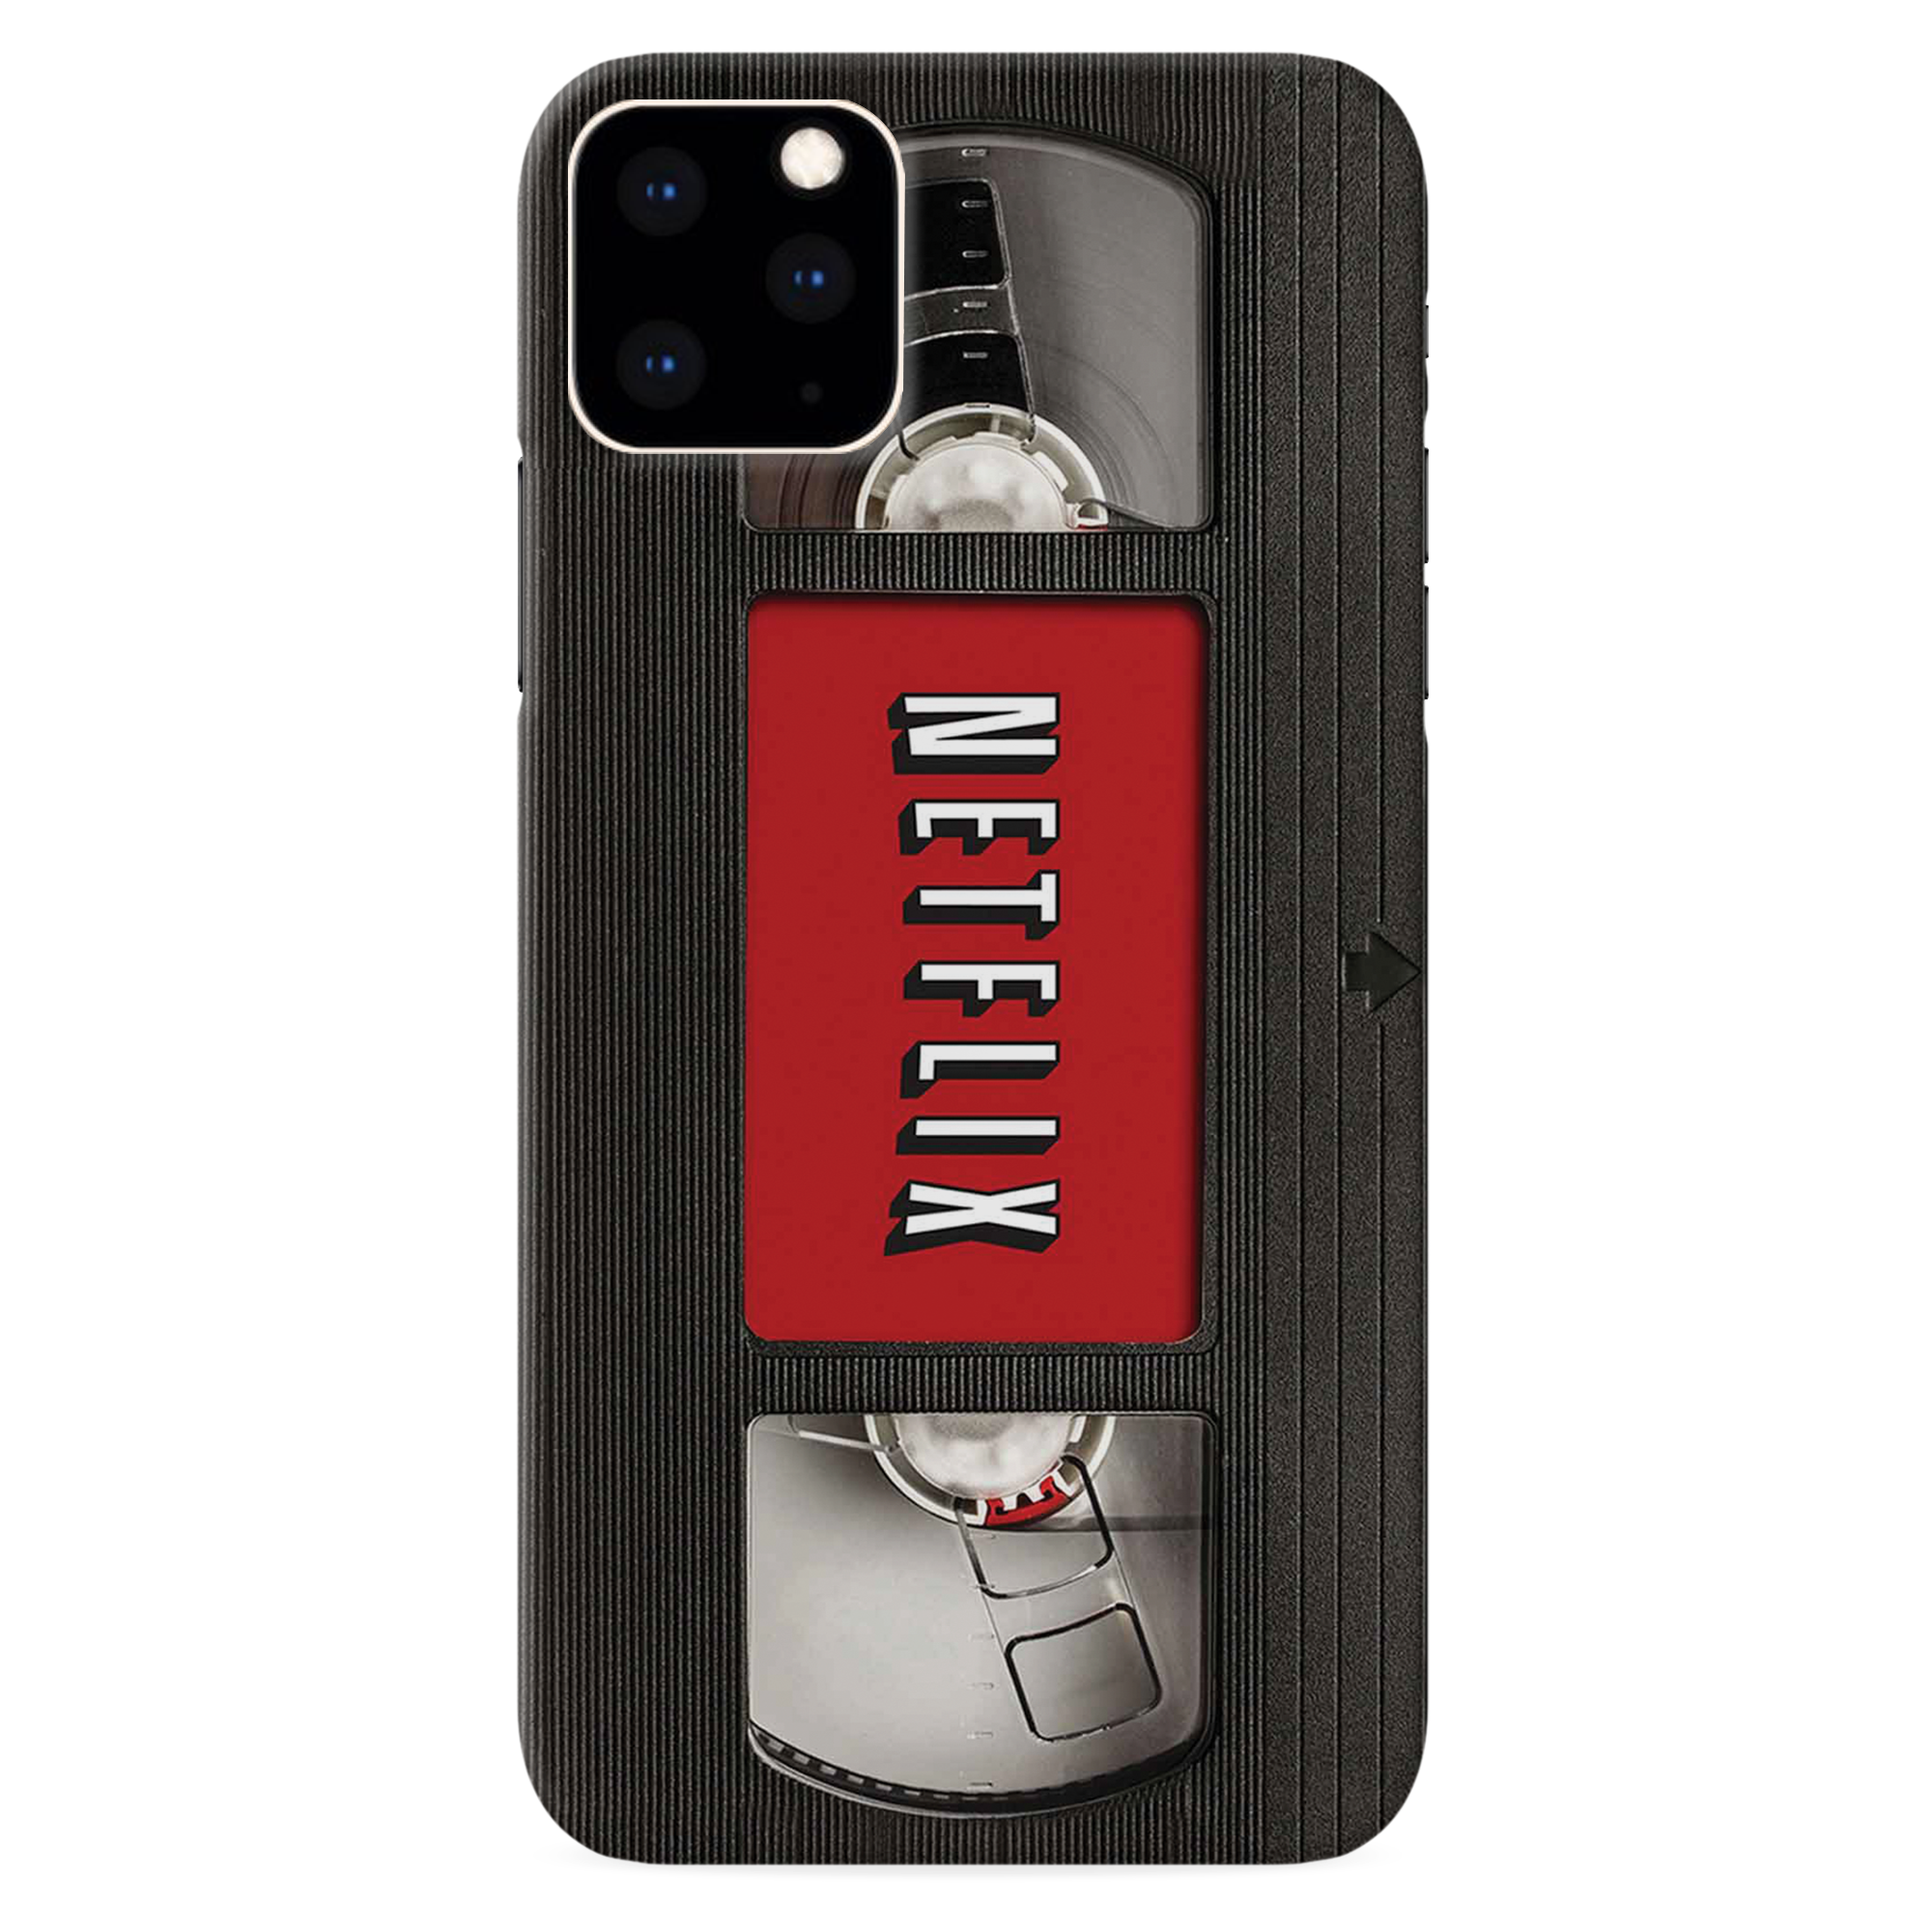 Netflix On VHS Slim Case And Cover For iPhone 11 Pro Max